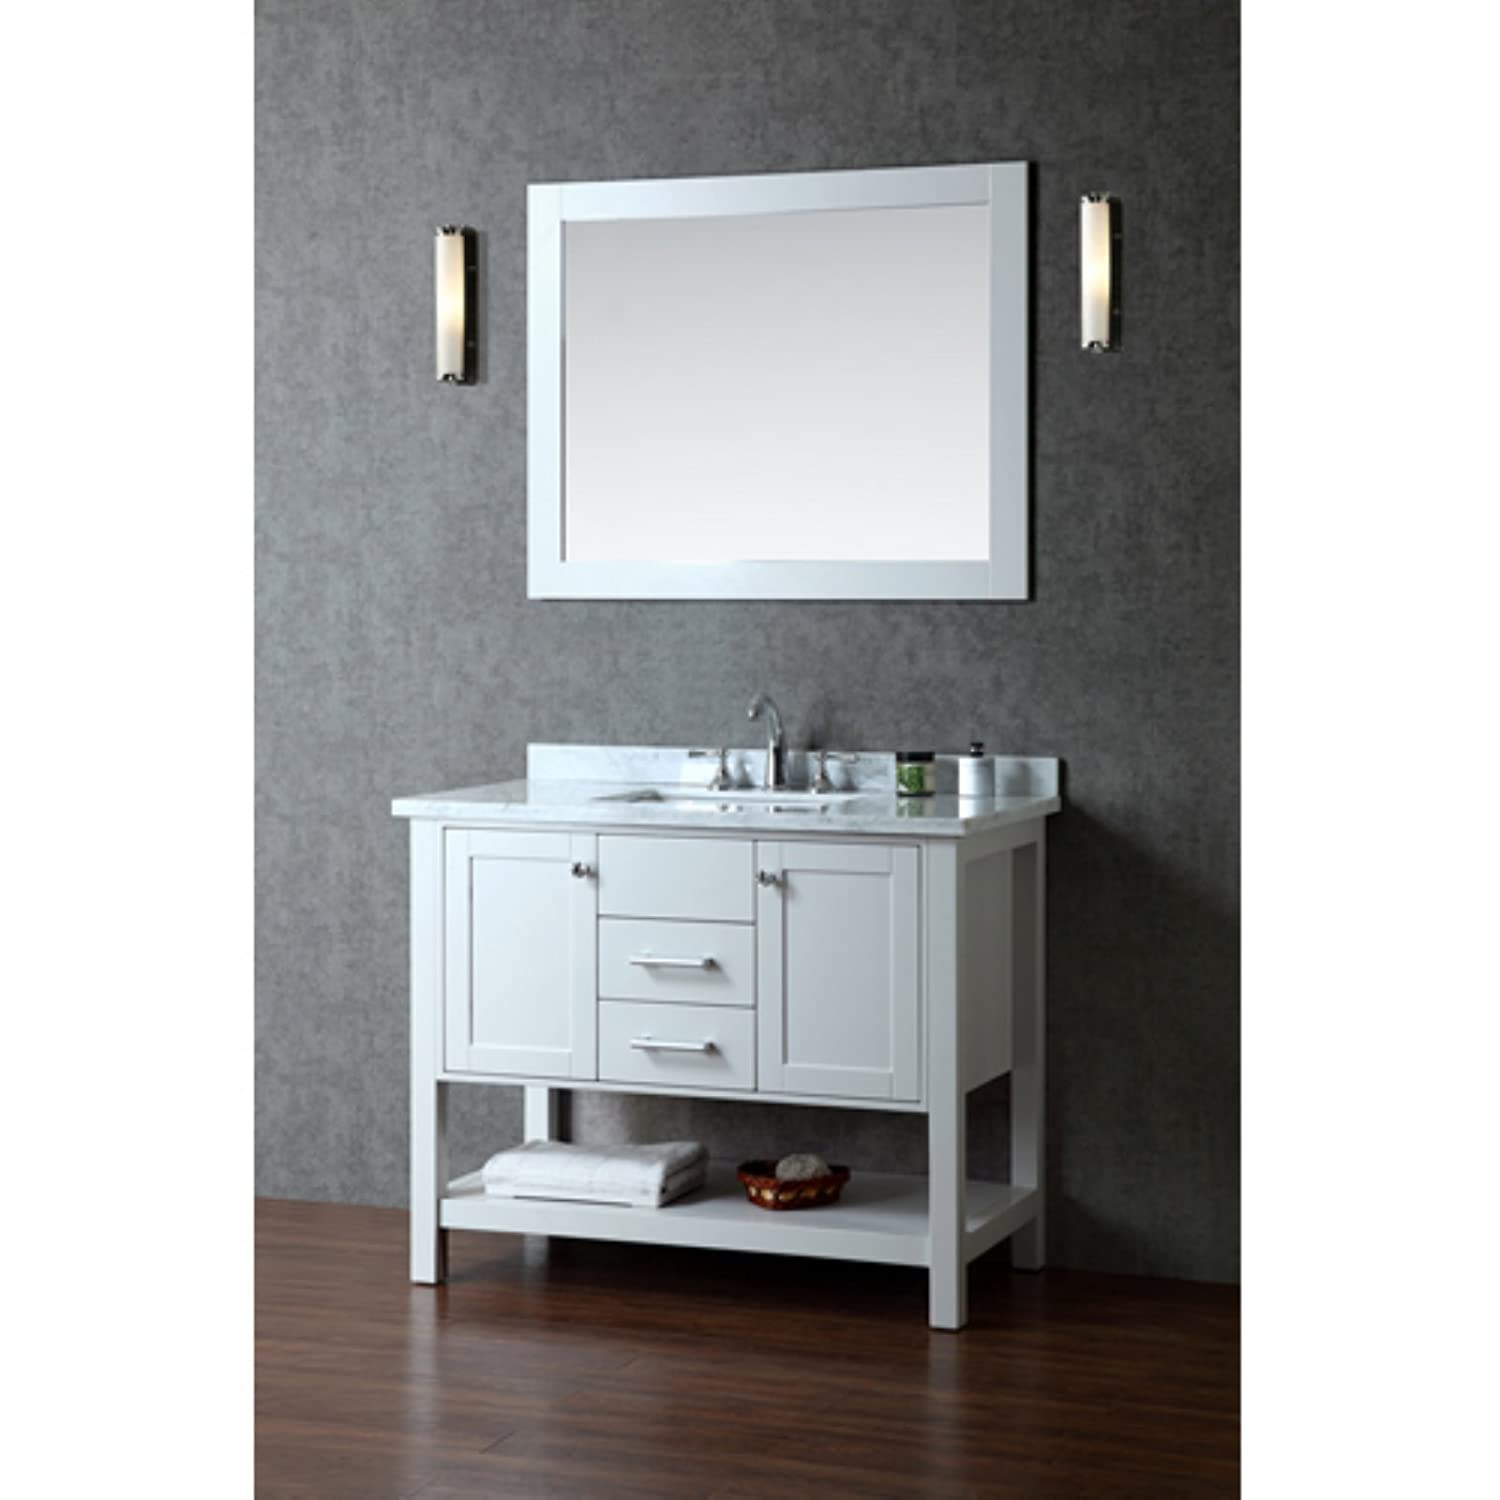 Miroir Salle De Bain Woodstock ~ Bayhill 42 Single Sink Bathroom Vanity Set Amazon Co Uk Kitchen